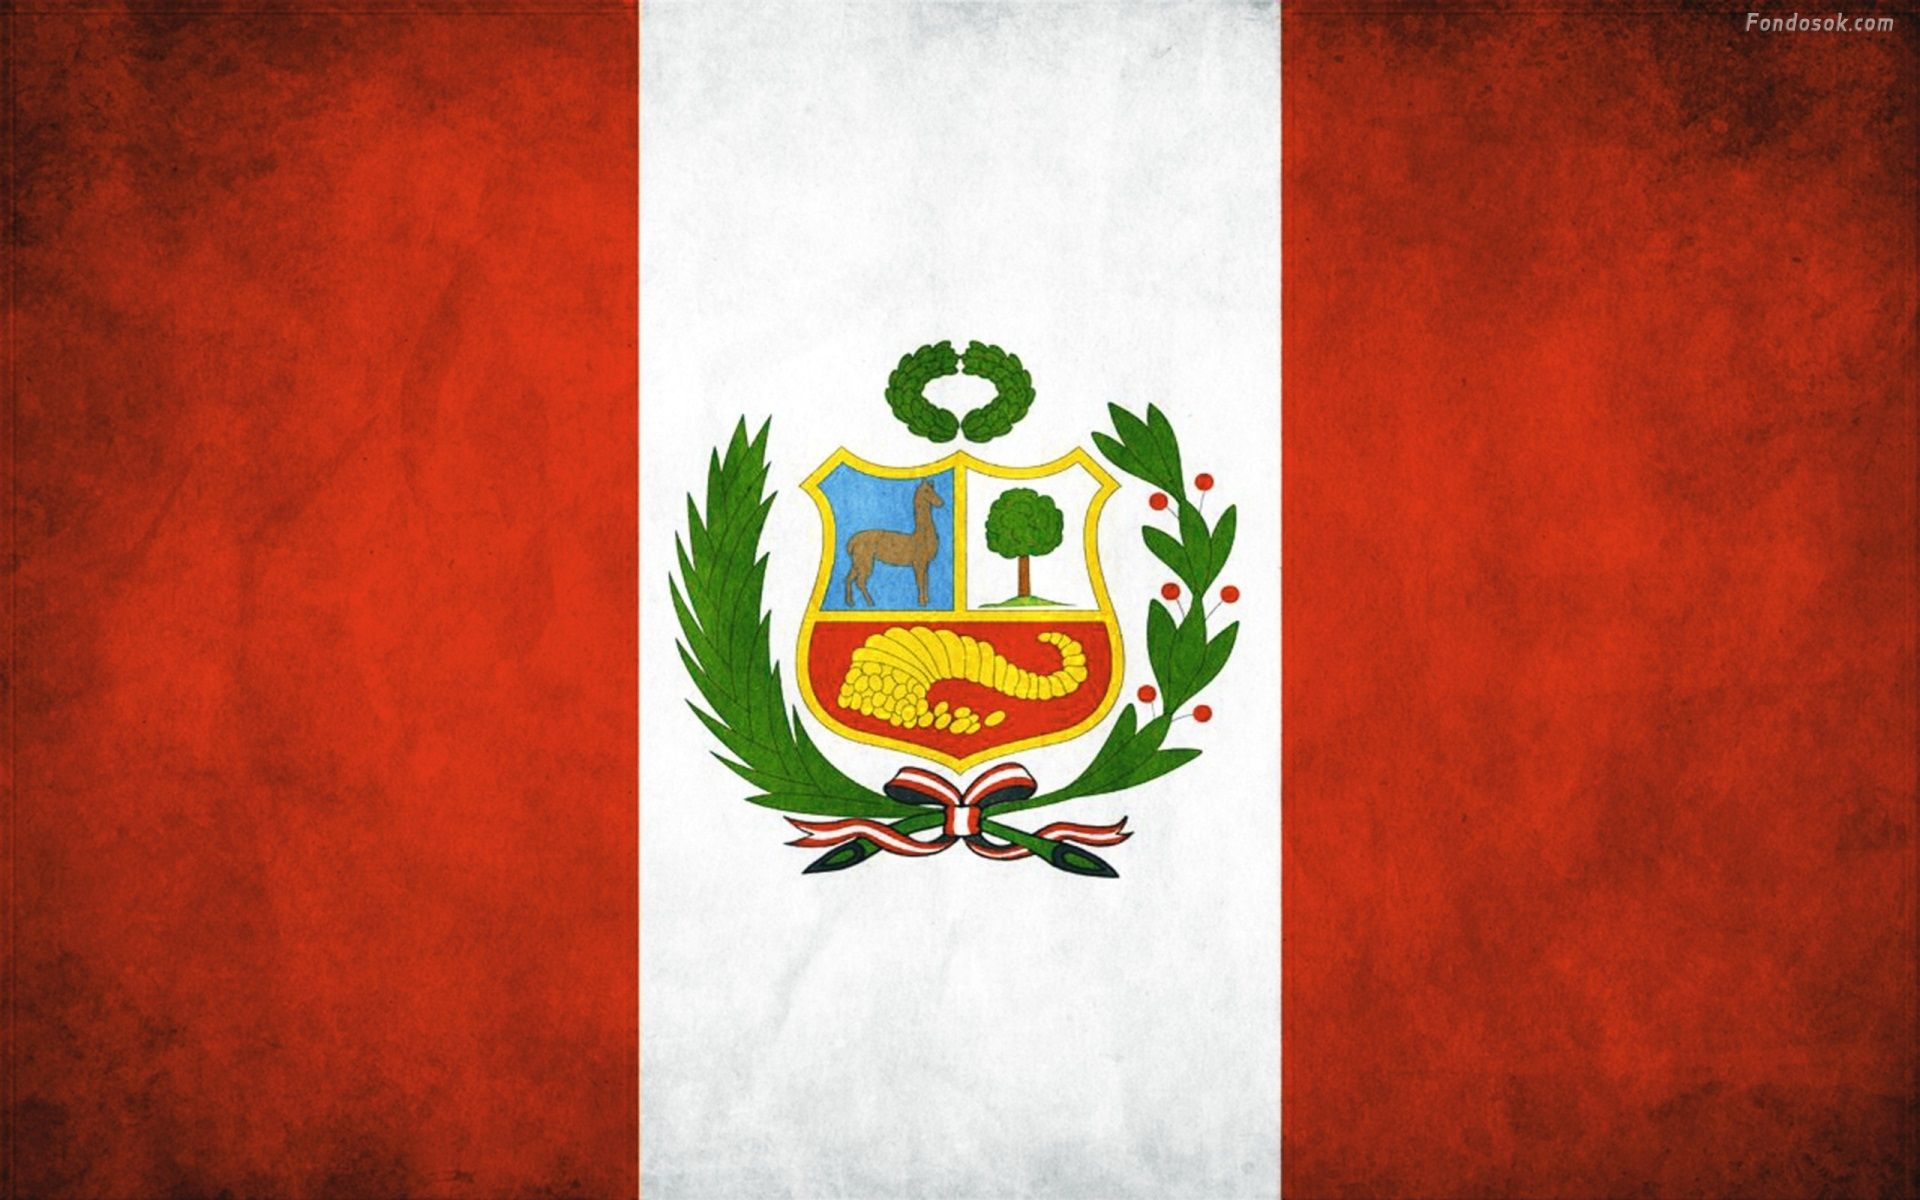 45c6d1f07738 Fondos Bandera De Peru Widescreen Wallpapers Hd Y Pantalla | EiickO ...